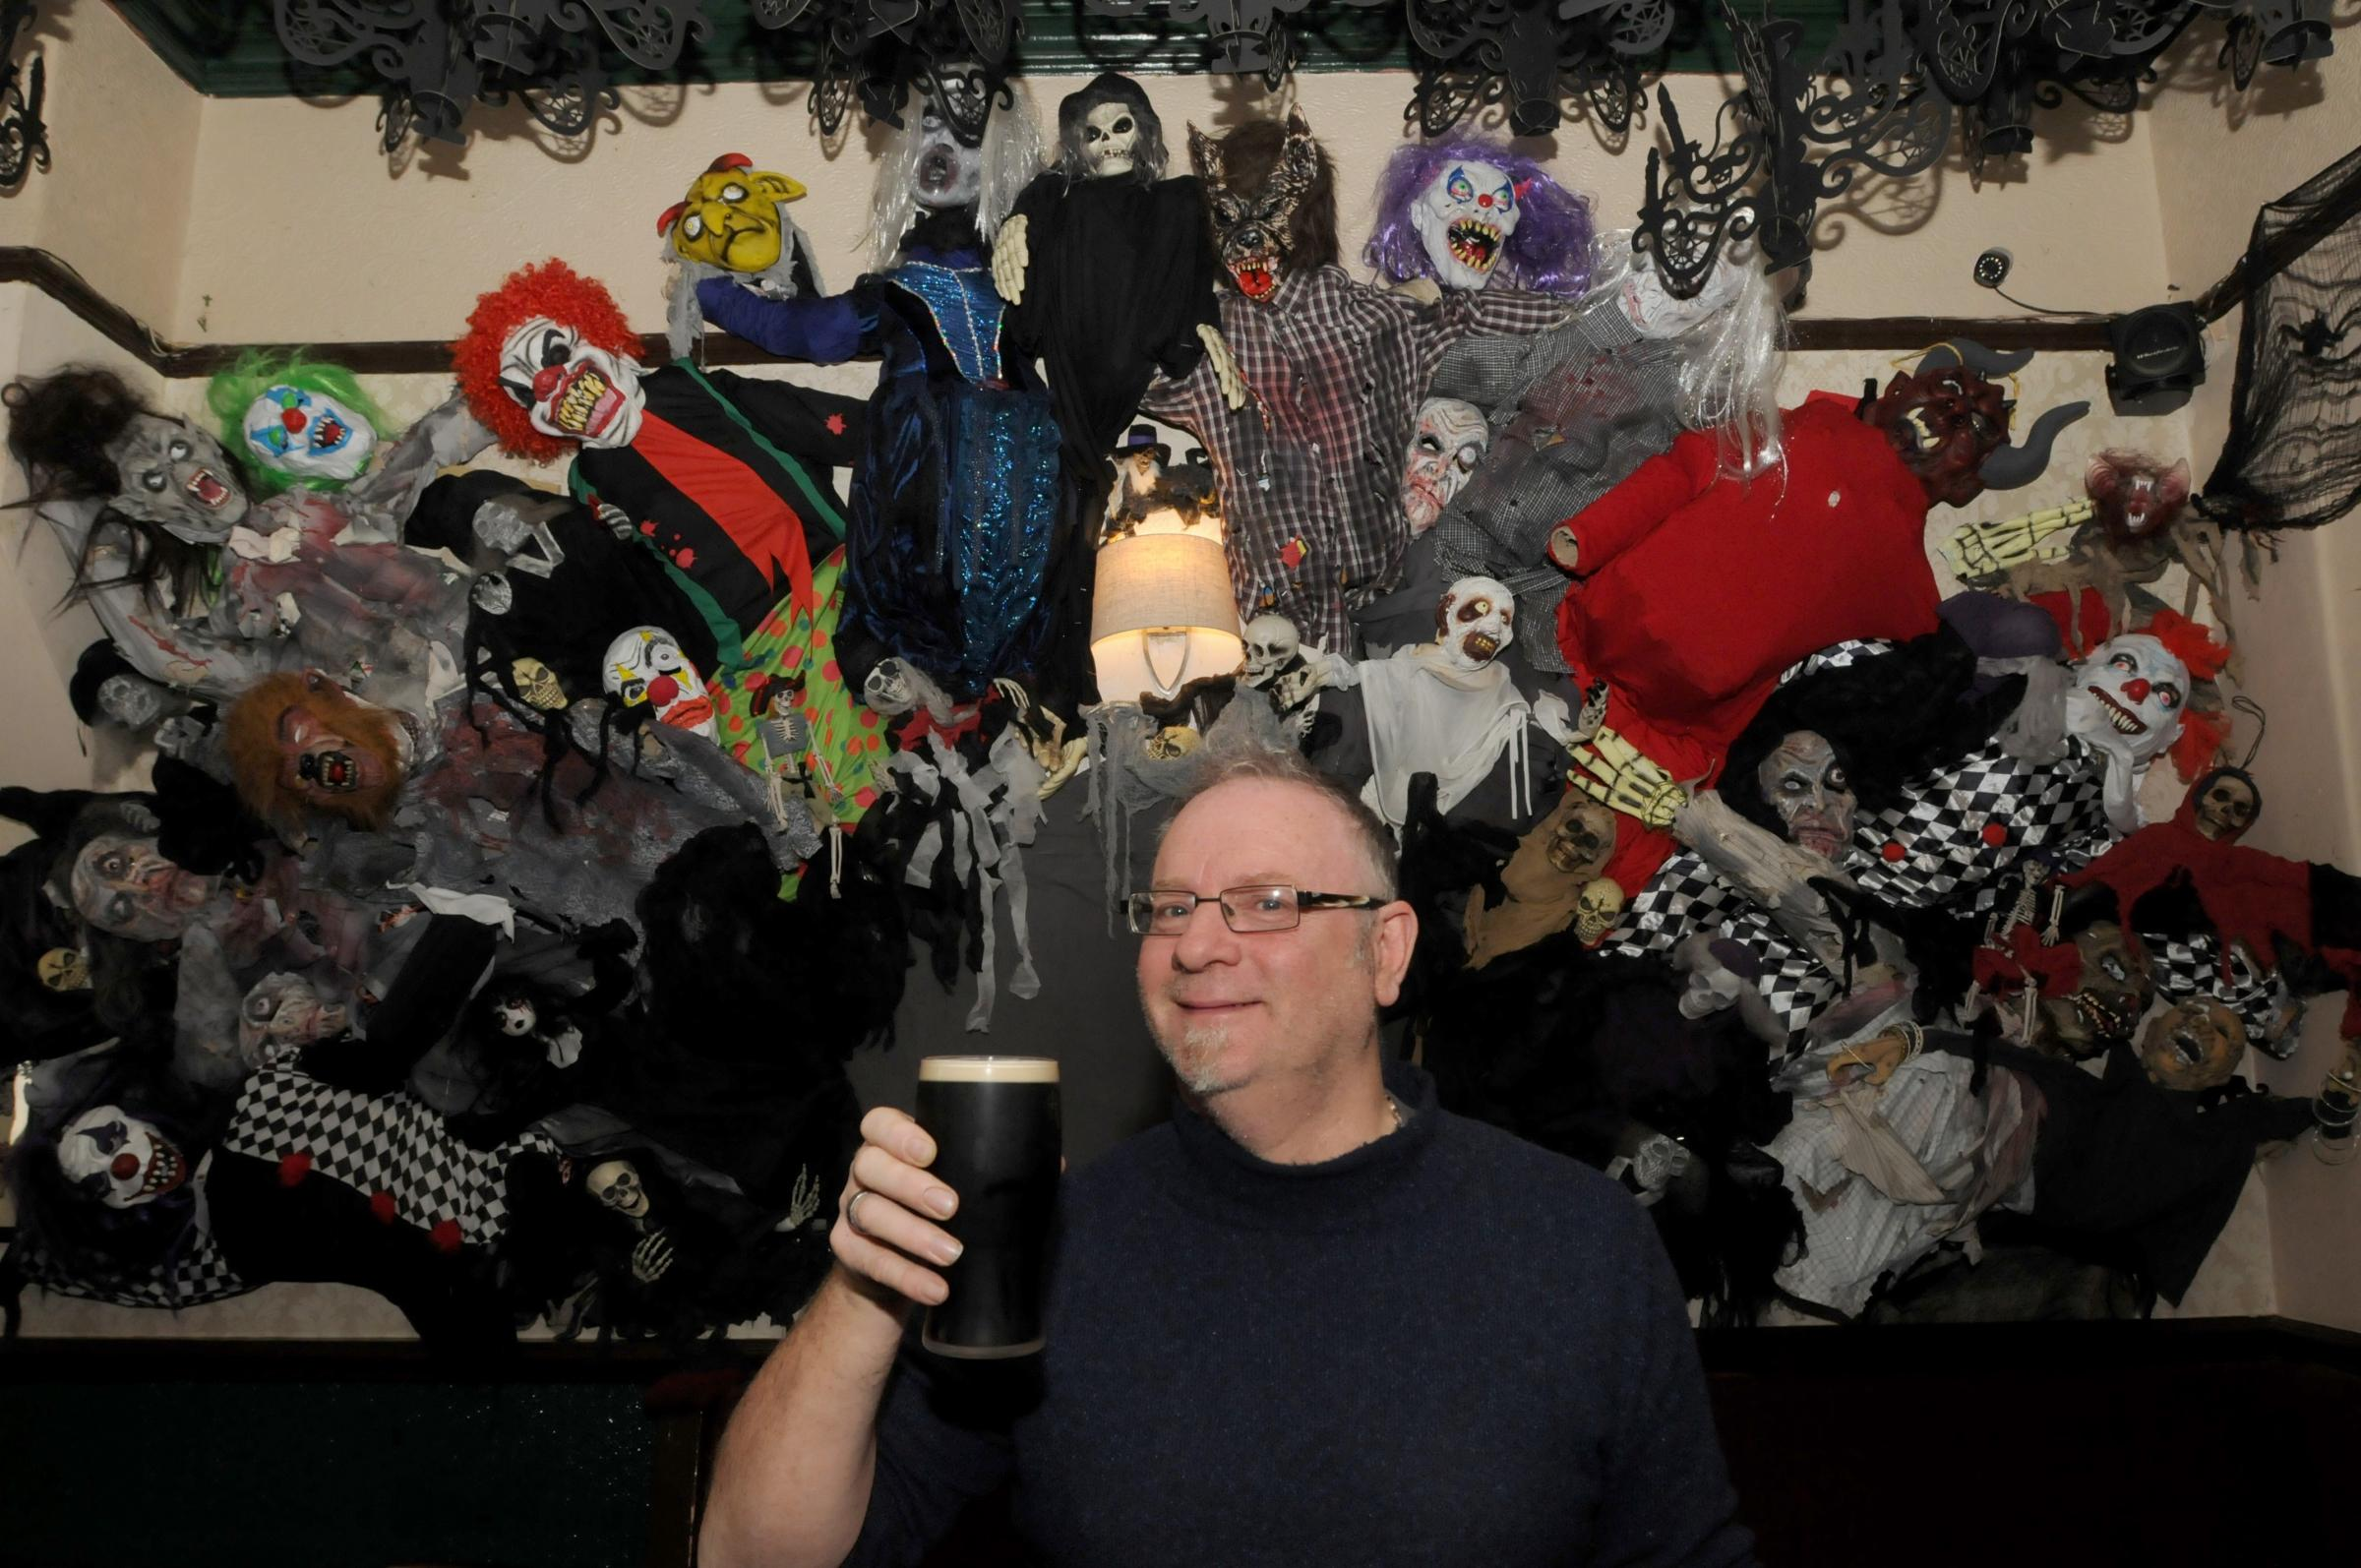 The Lower Angel pub is looking spooky for Halloween 2019